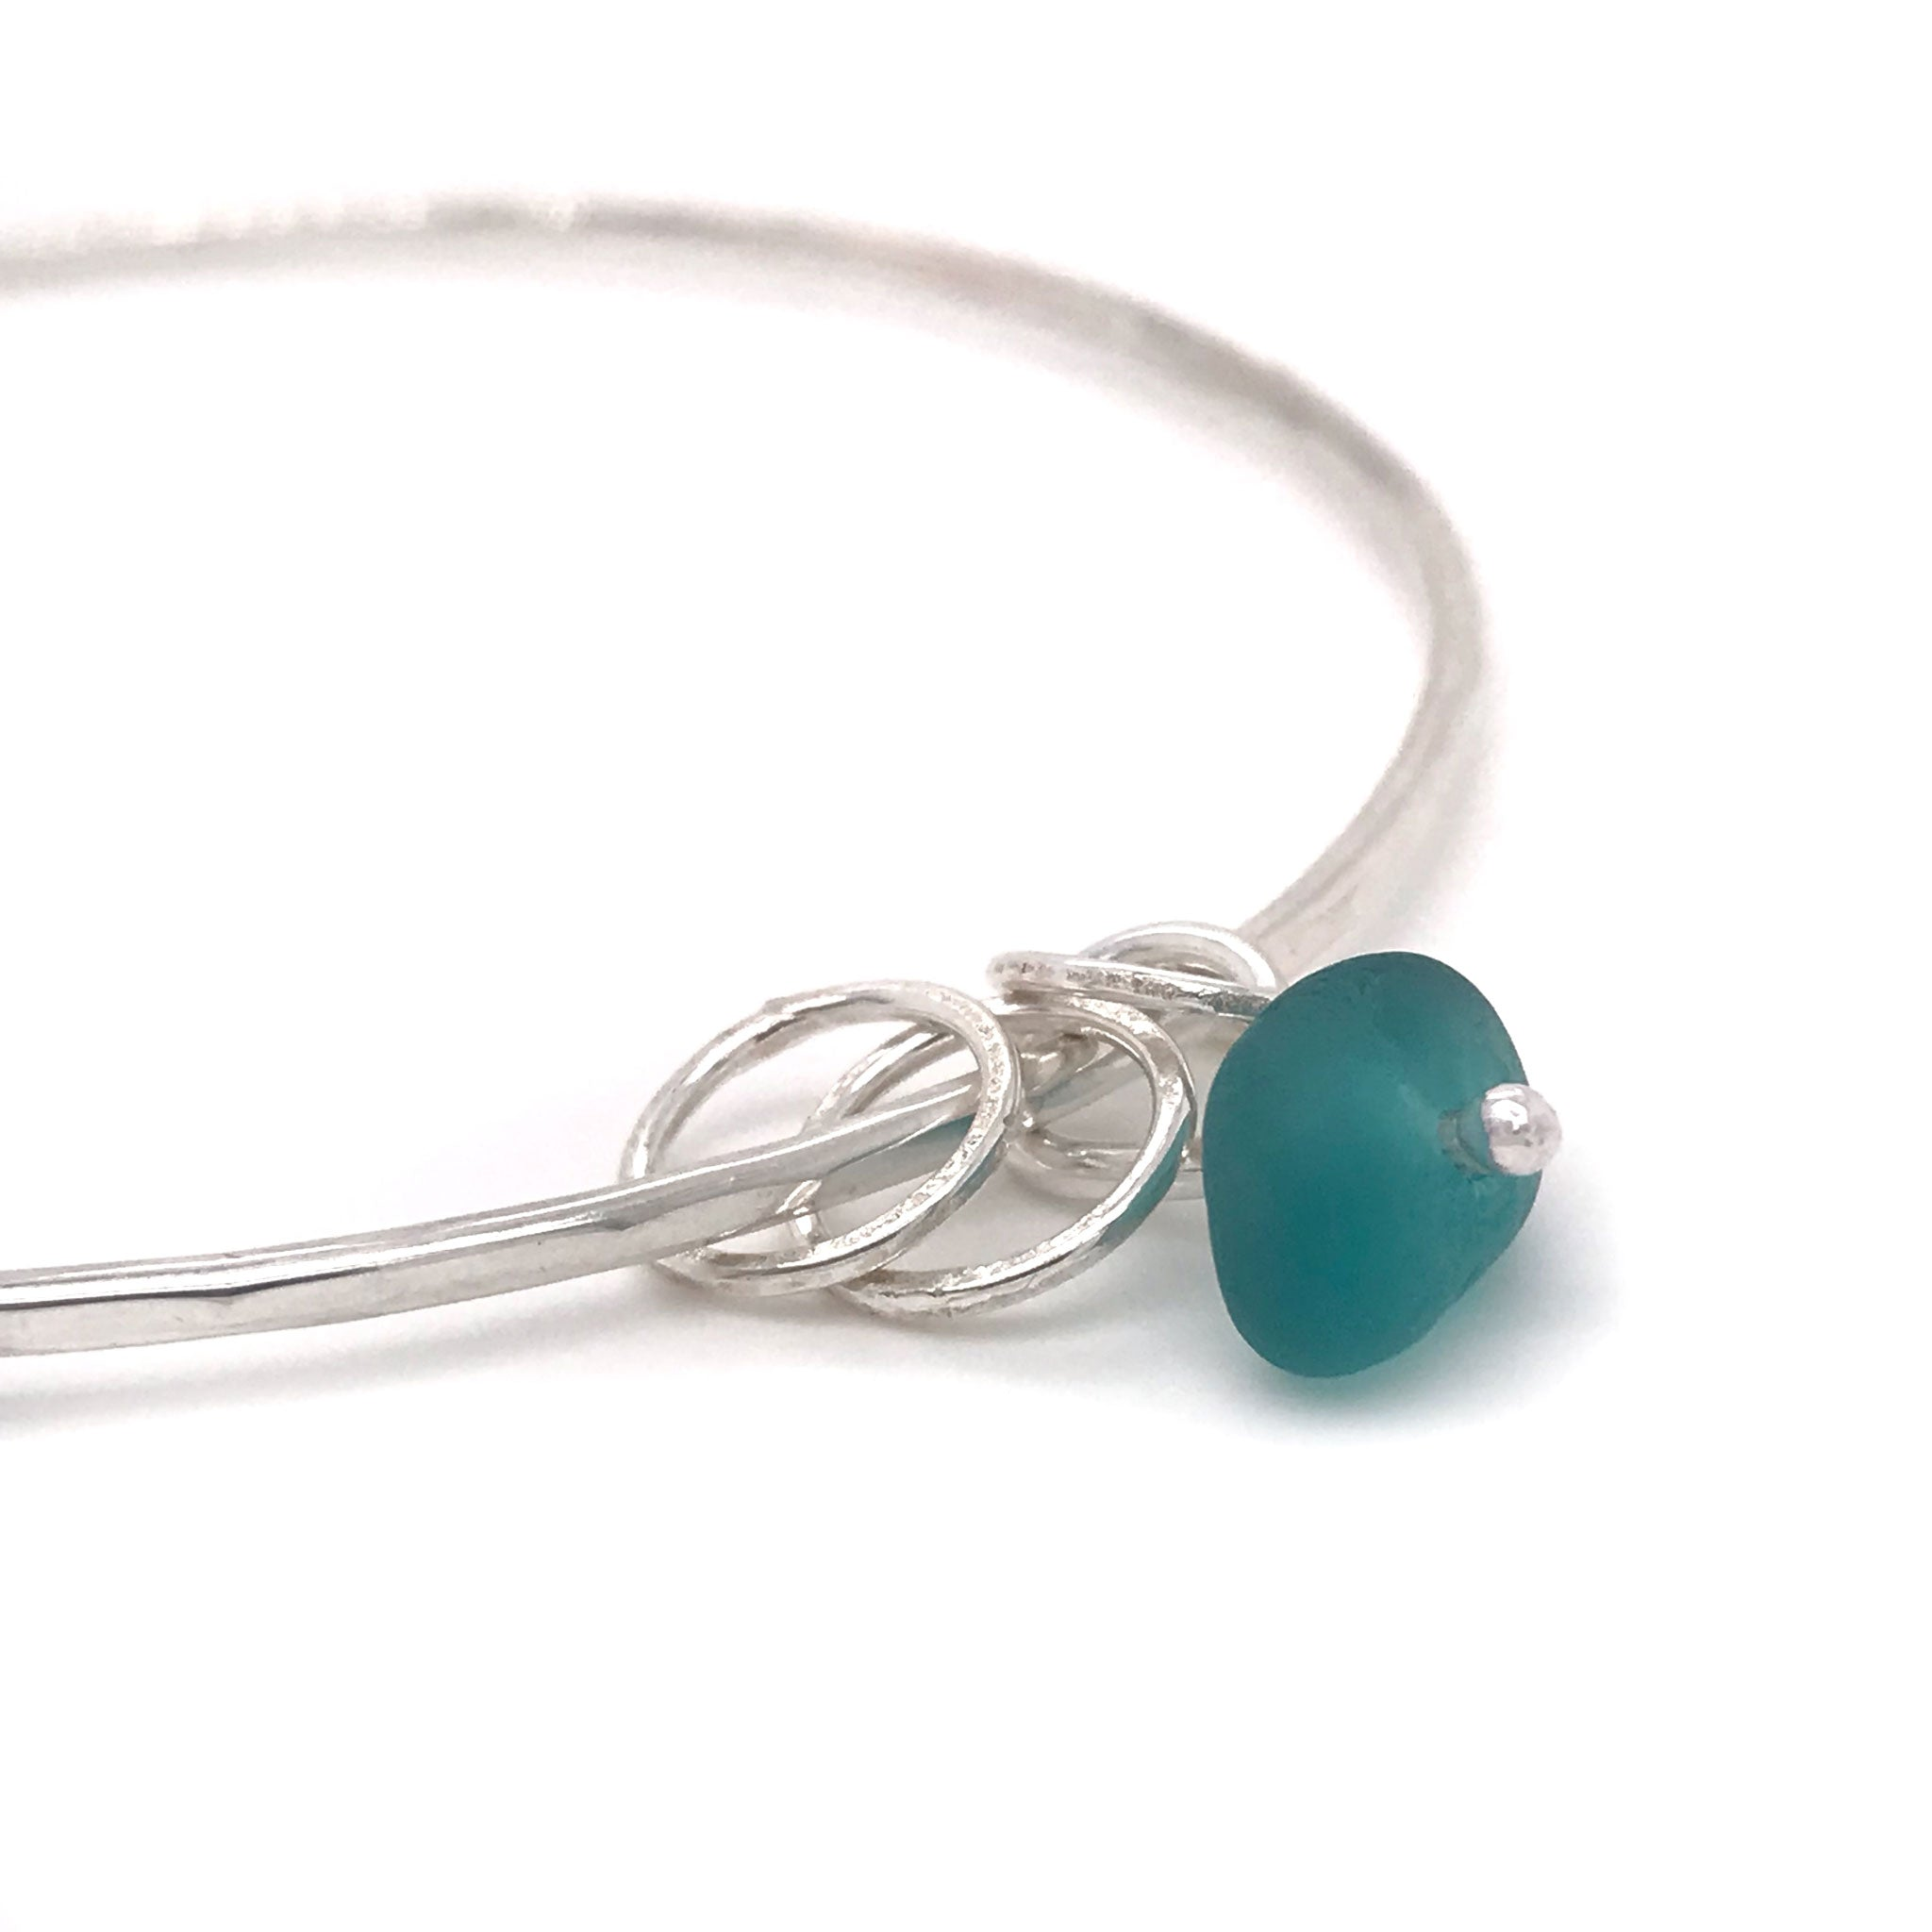 teal seaglass bangle sterling silver with three silver rings Kriket Broadhurst jewellery Christmas gift